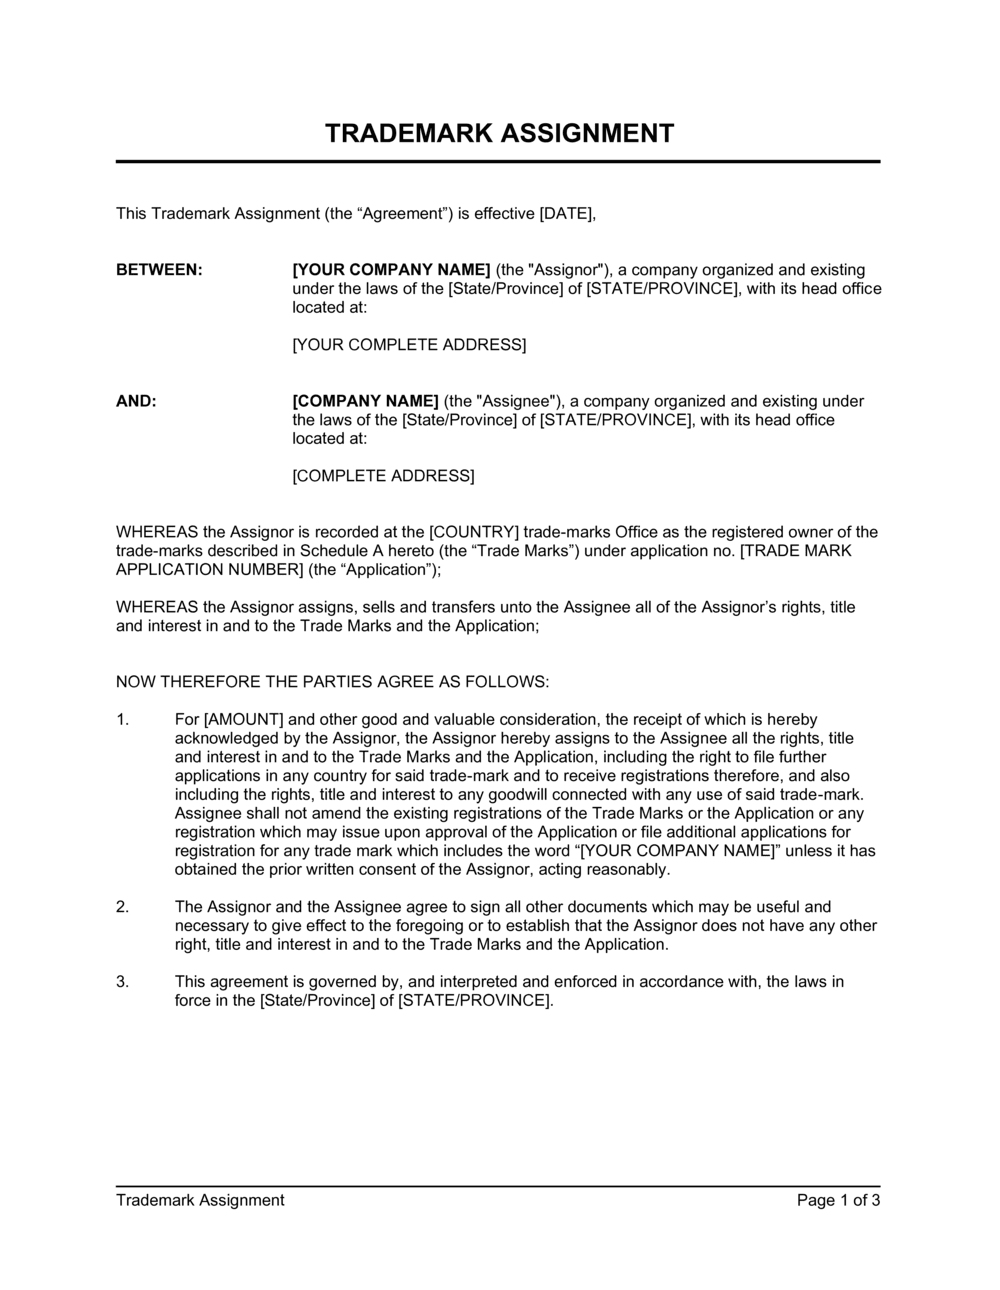 Business-in-a-Box's Trademark Assignment Short Form Template